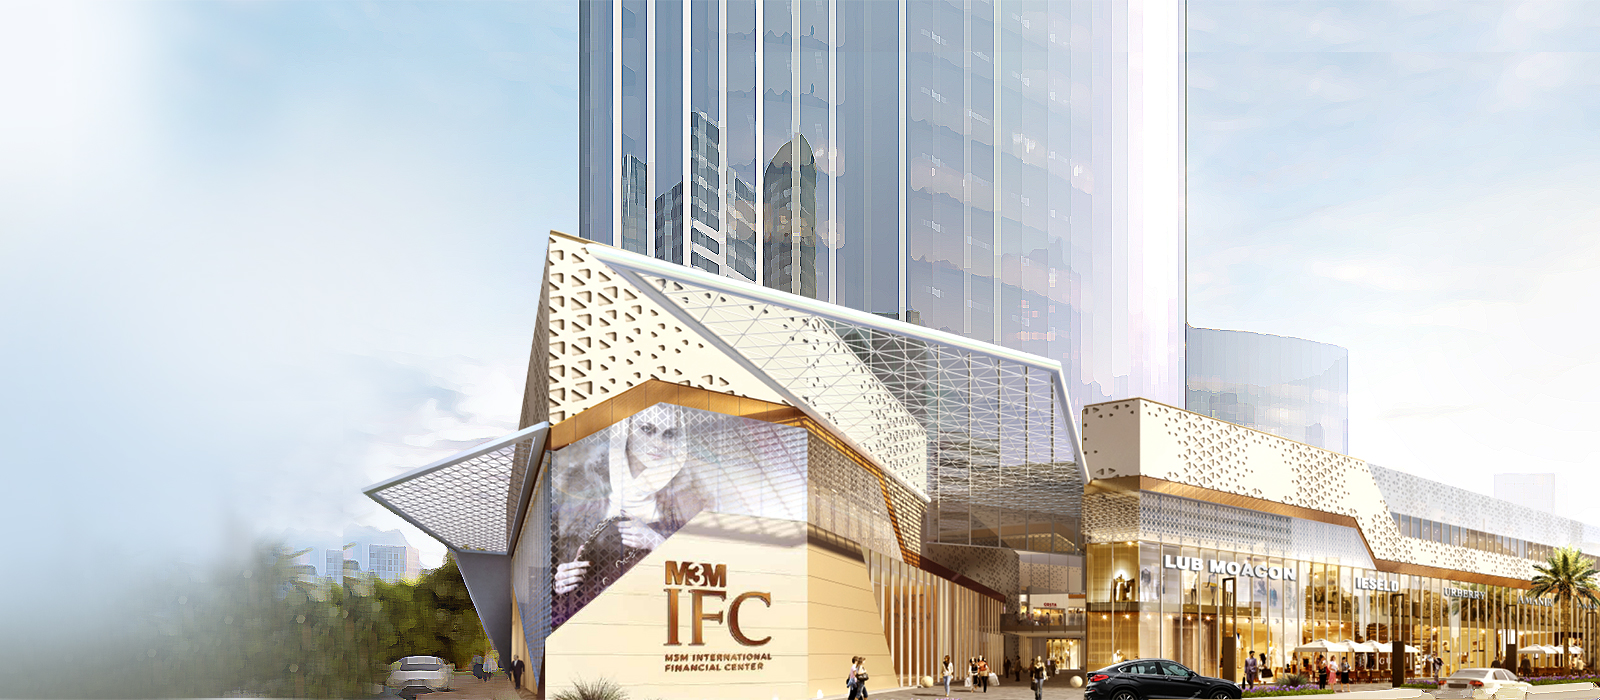 M3M International Financial Center (IFC)